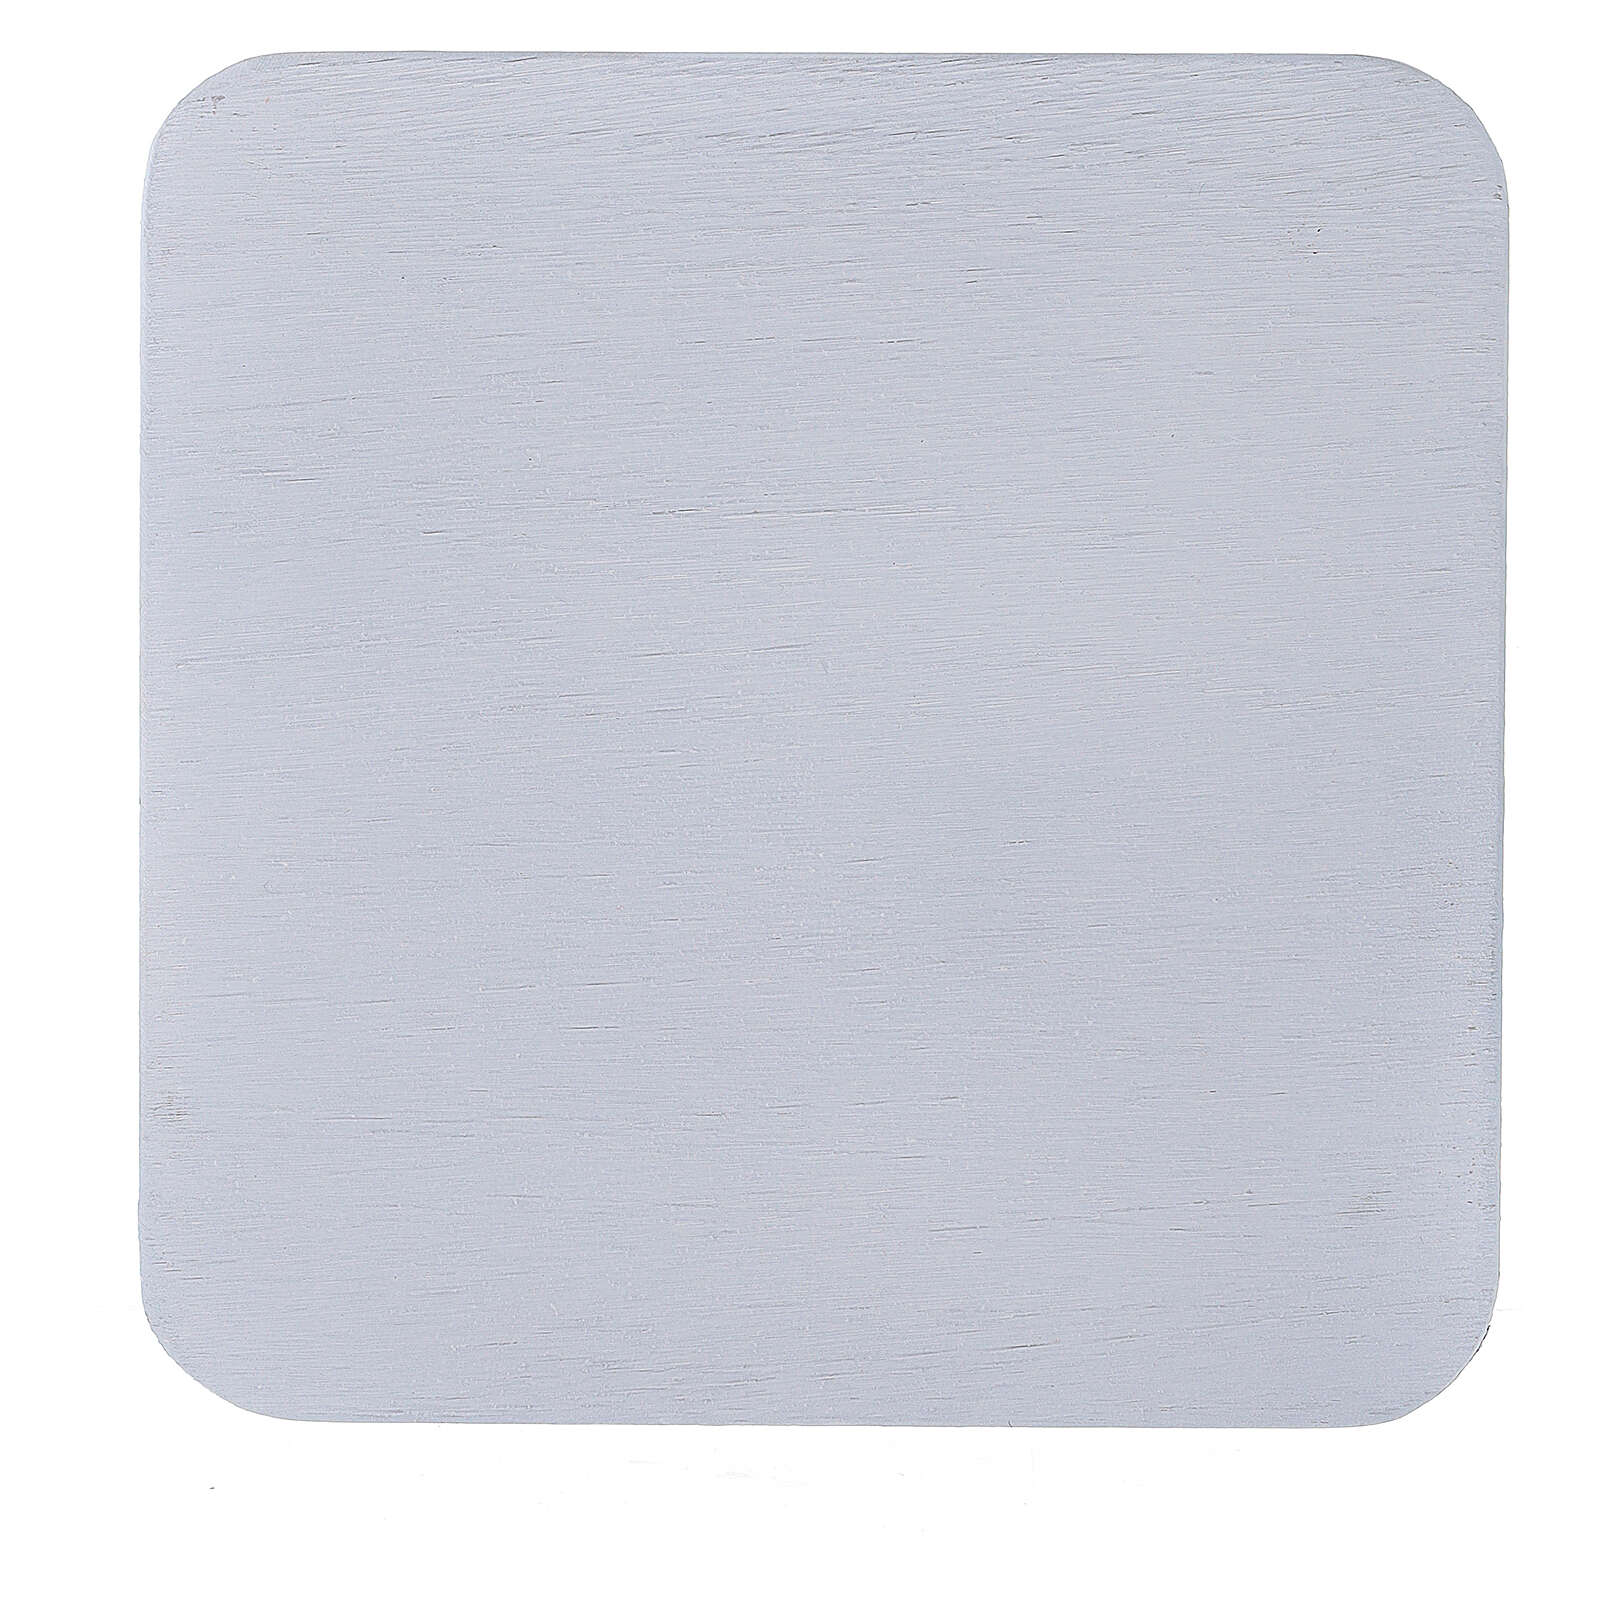 Square candle holder plate in white aluminium 4 3/4x4 3/4 in 3